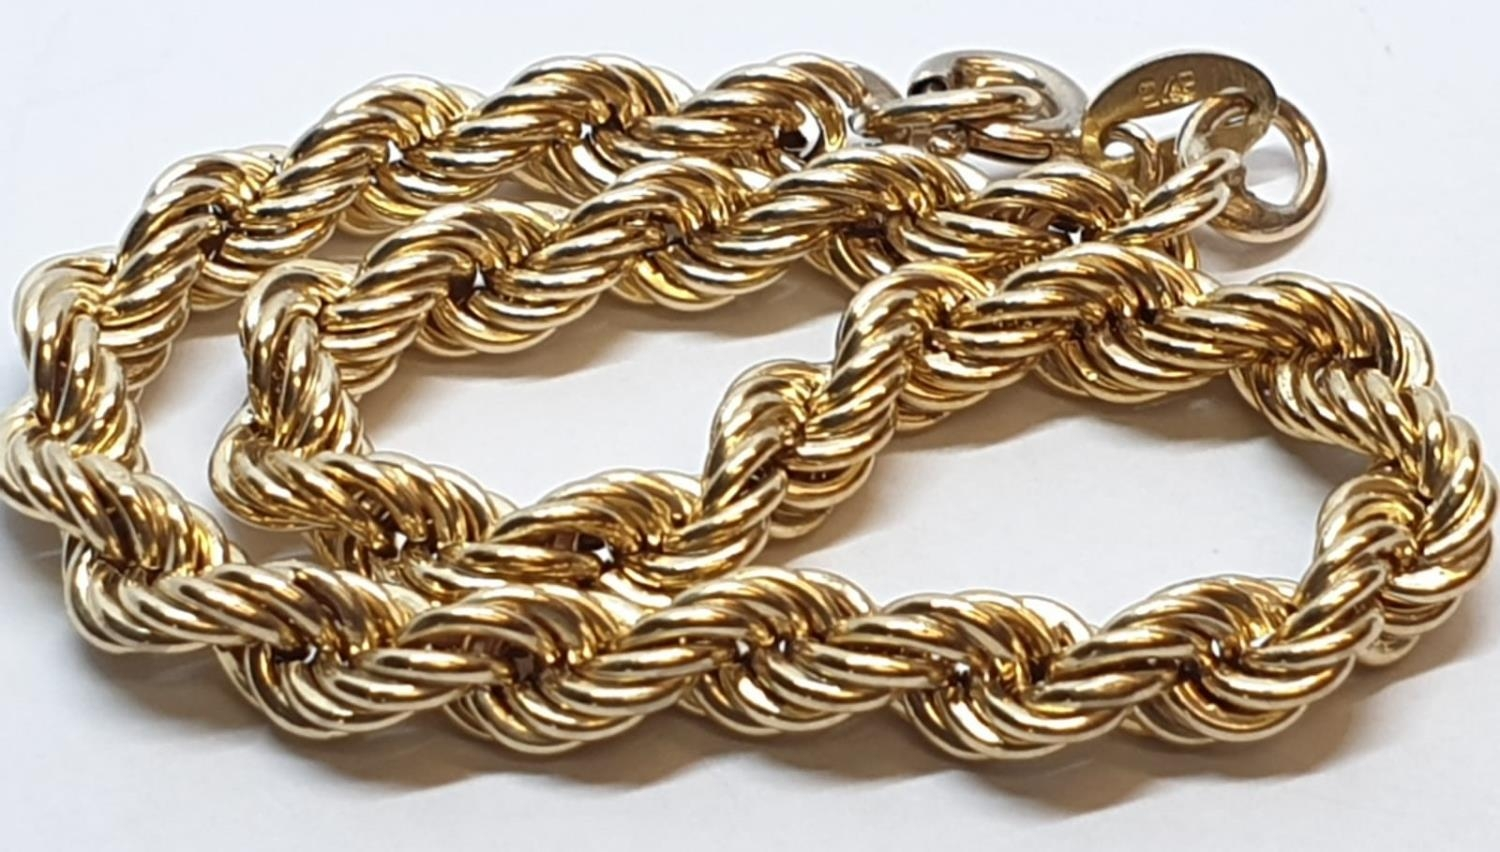 9ct Yellow gold rope bracelet. Weight 3.8g, Length 9cm. - Image 2 of 6